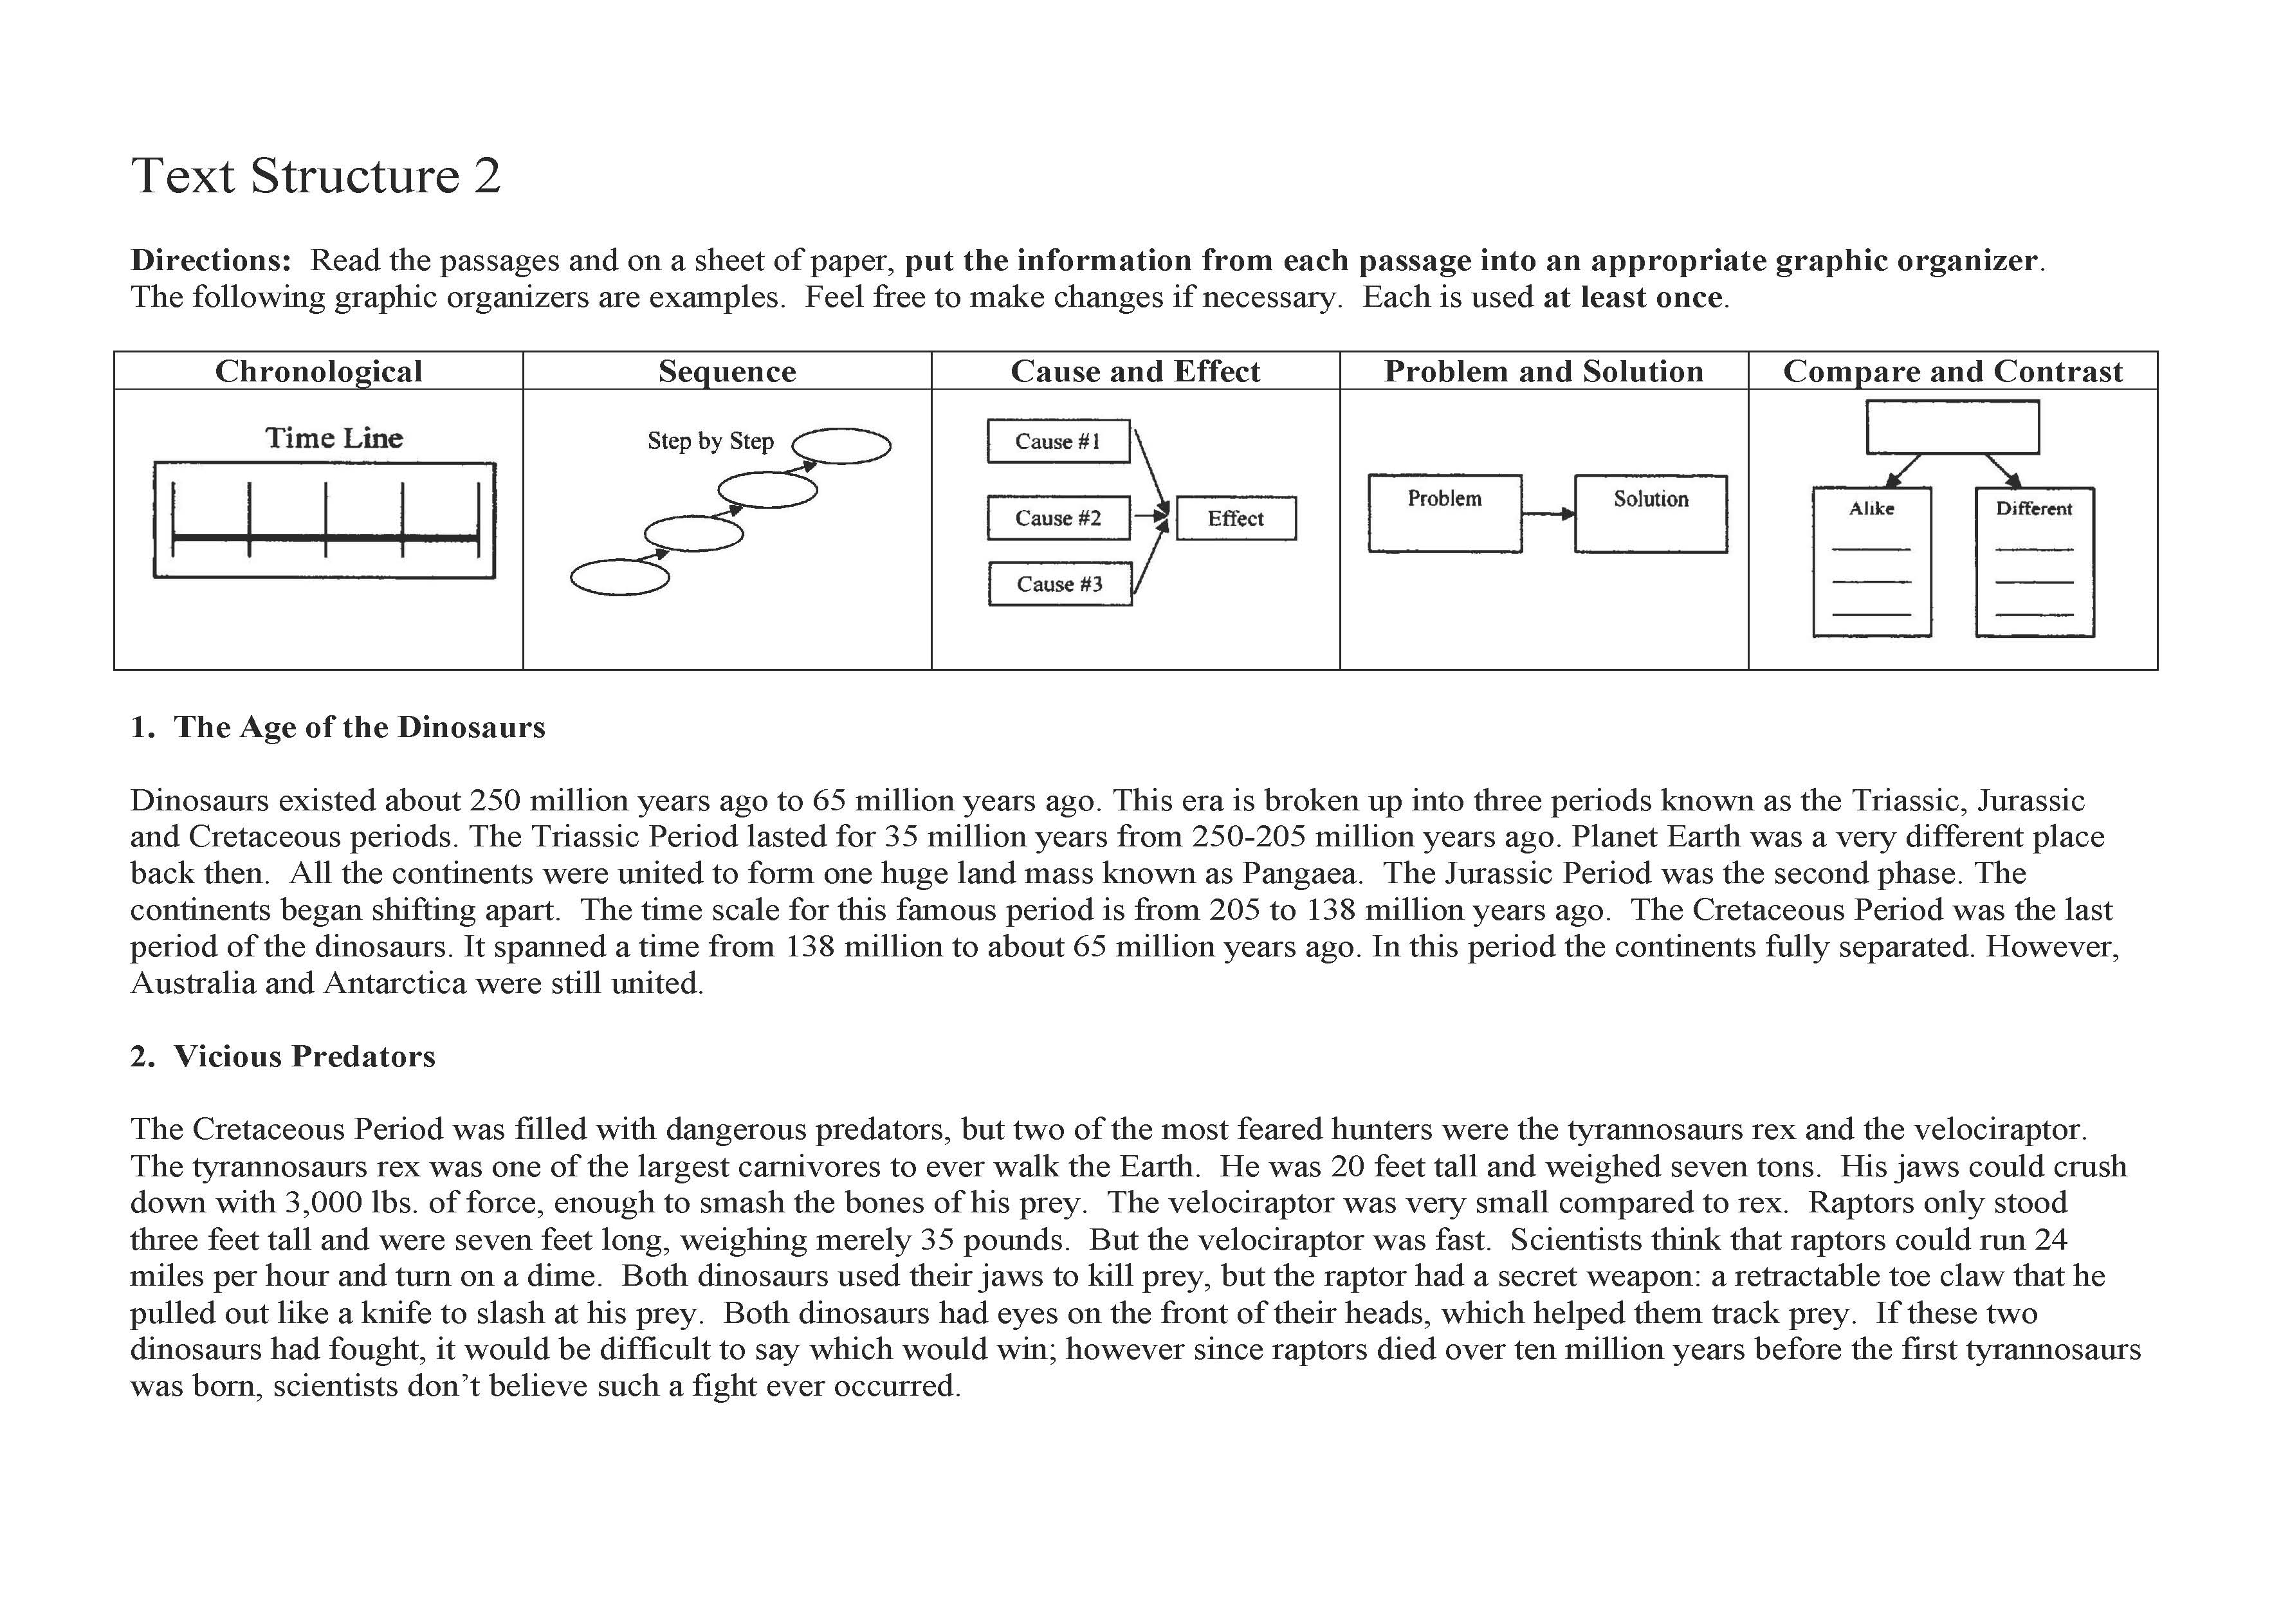 This is a preview image of the Text Structure Worksheet 2.